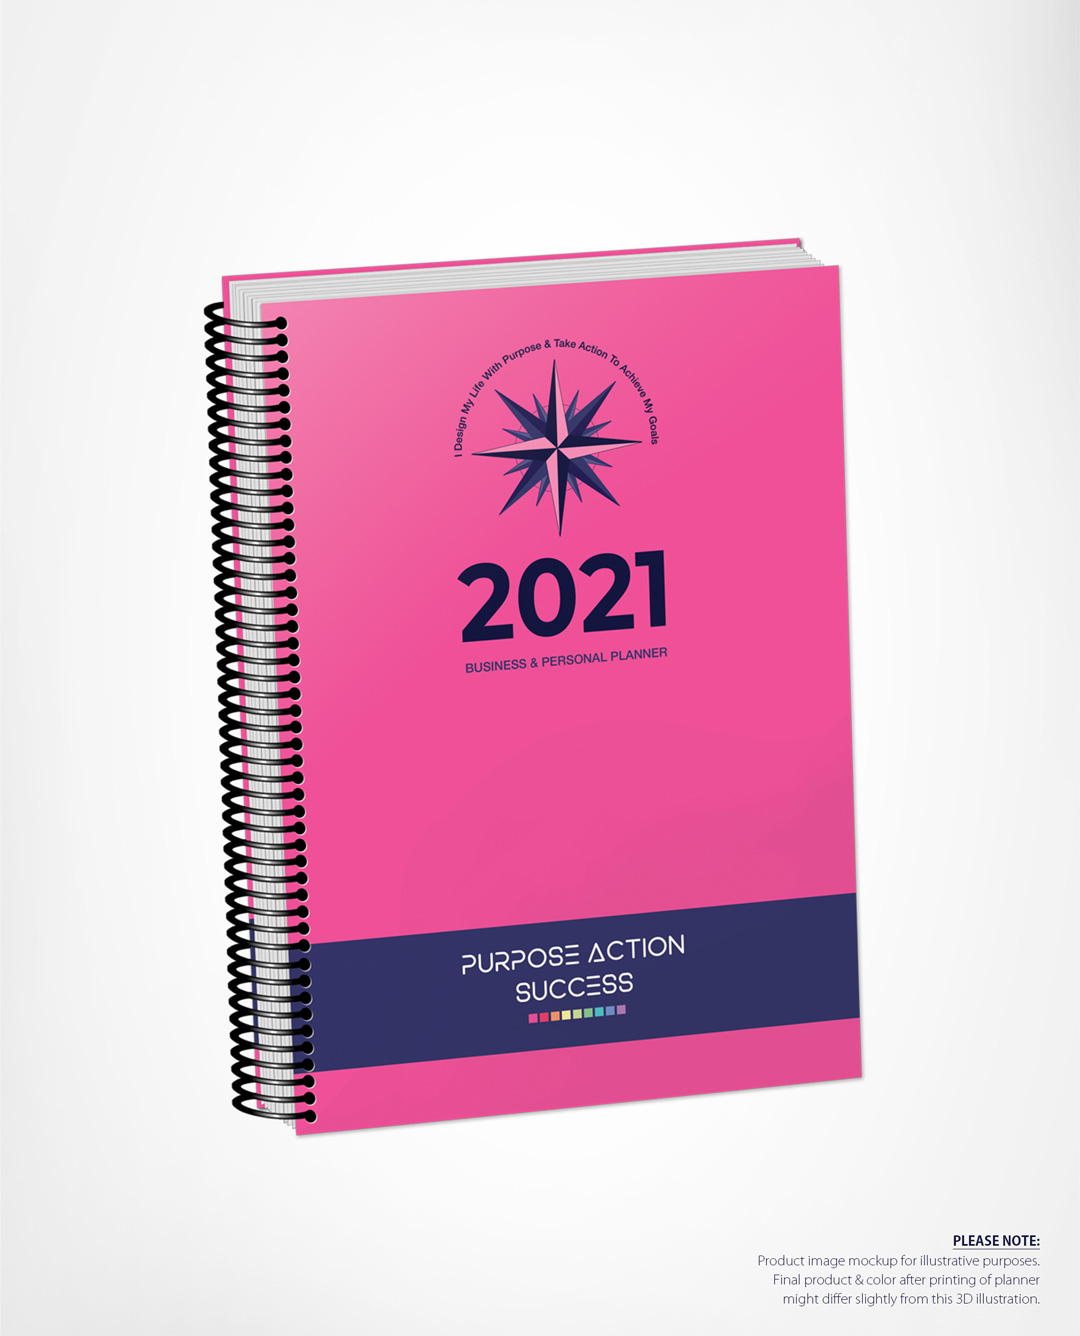 2021 MBS Business & Personal Planner - MBS Hot Pink Color